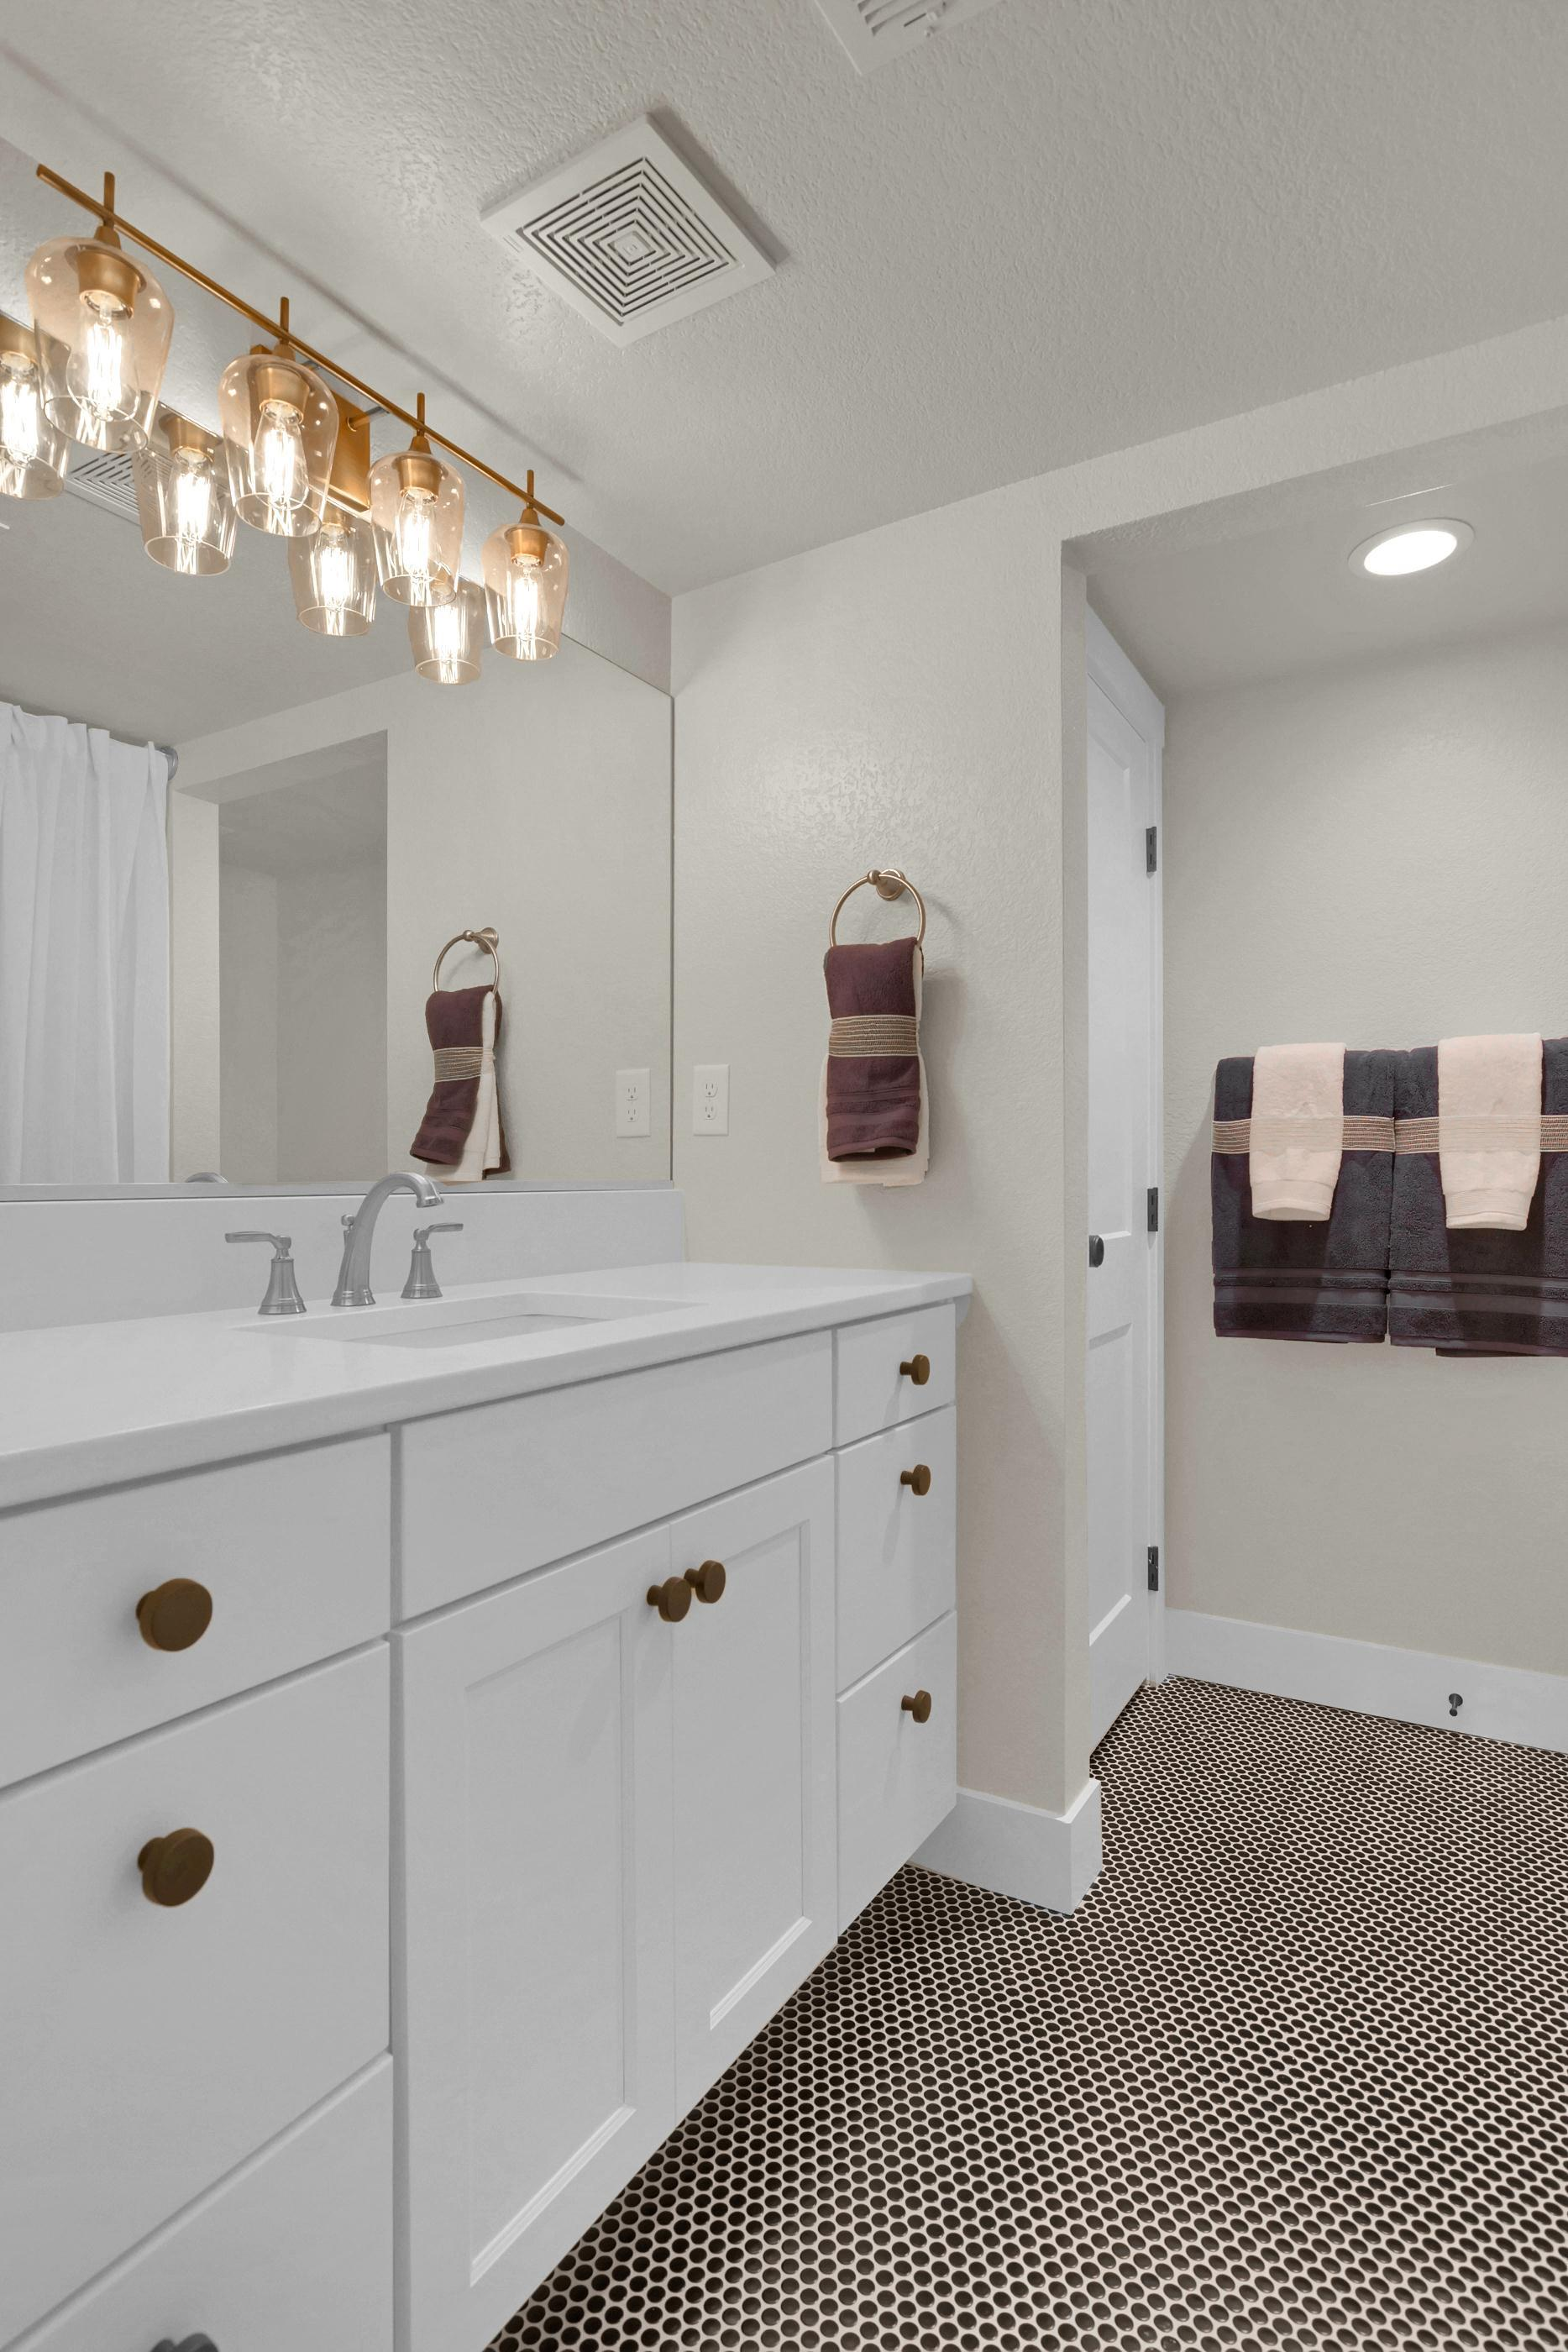 Bathroom featured in the Silverton By Keller Homes, A Toll Bros. Co. in Colorado Springs, CO